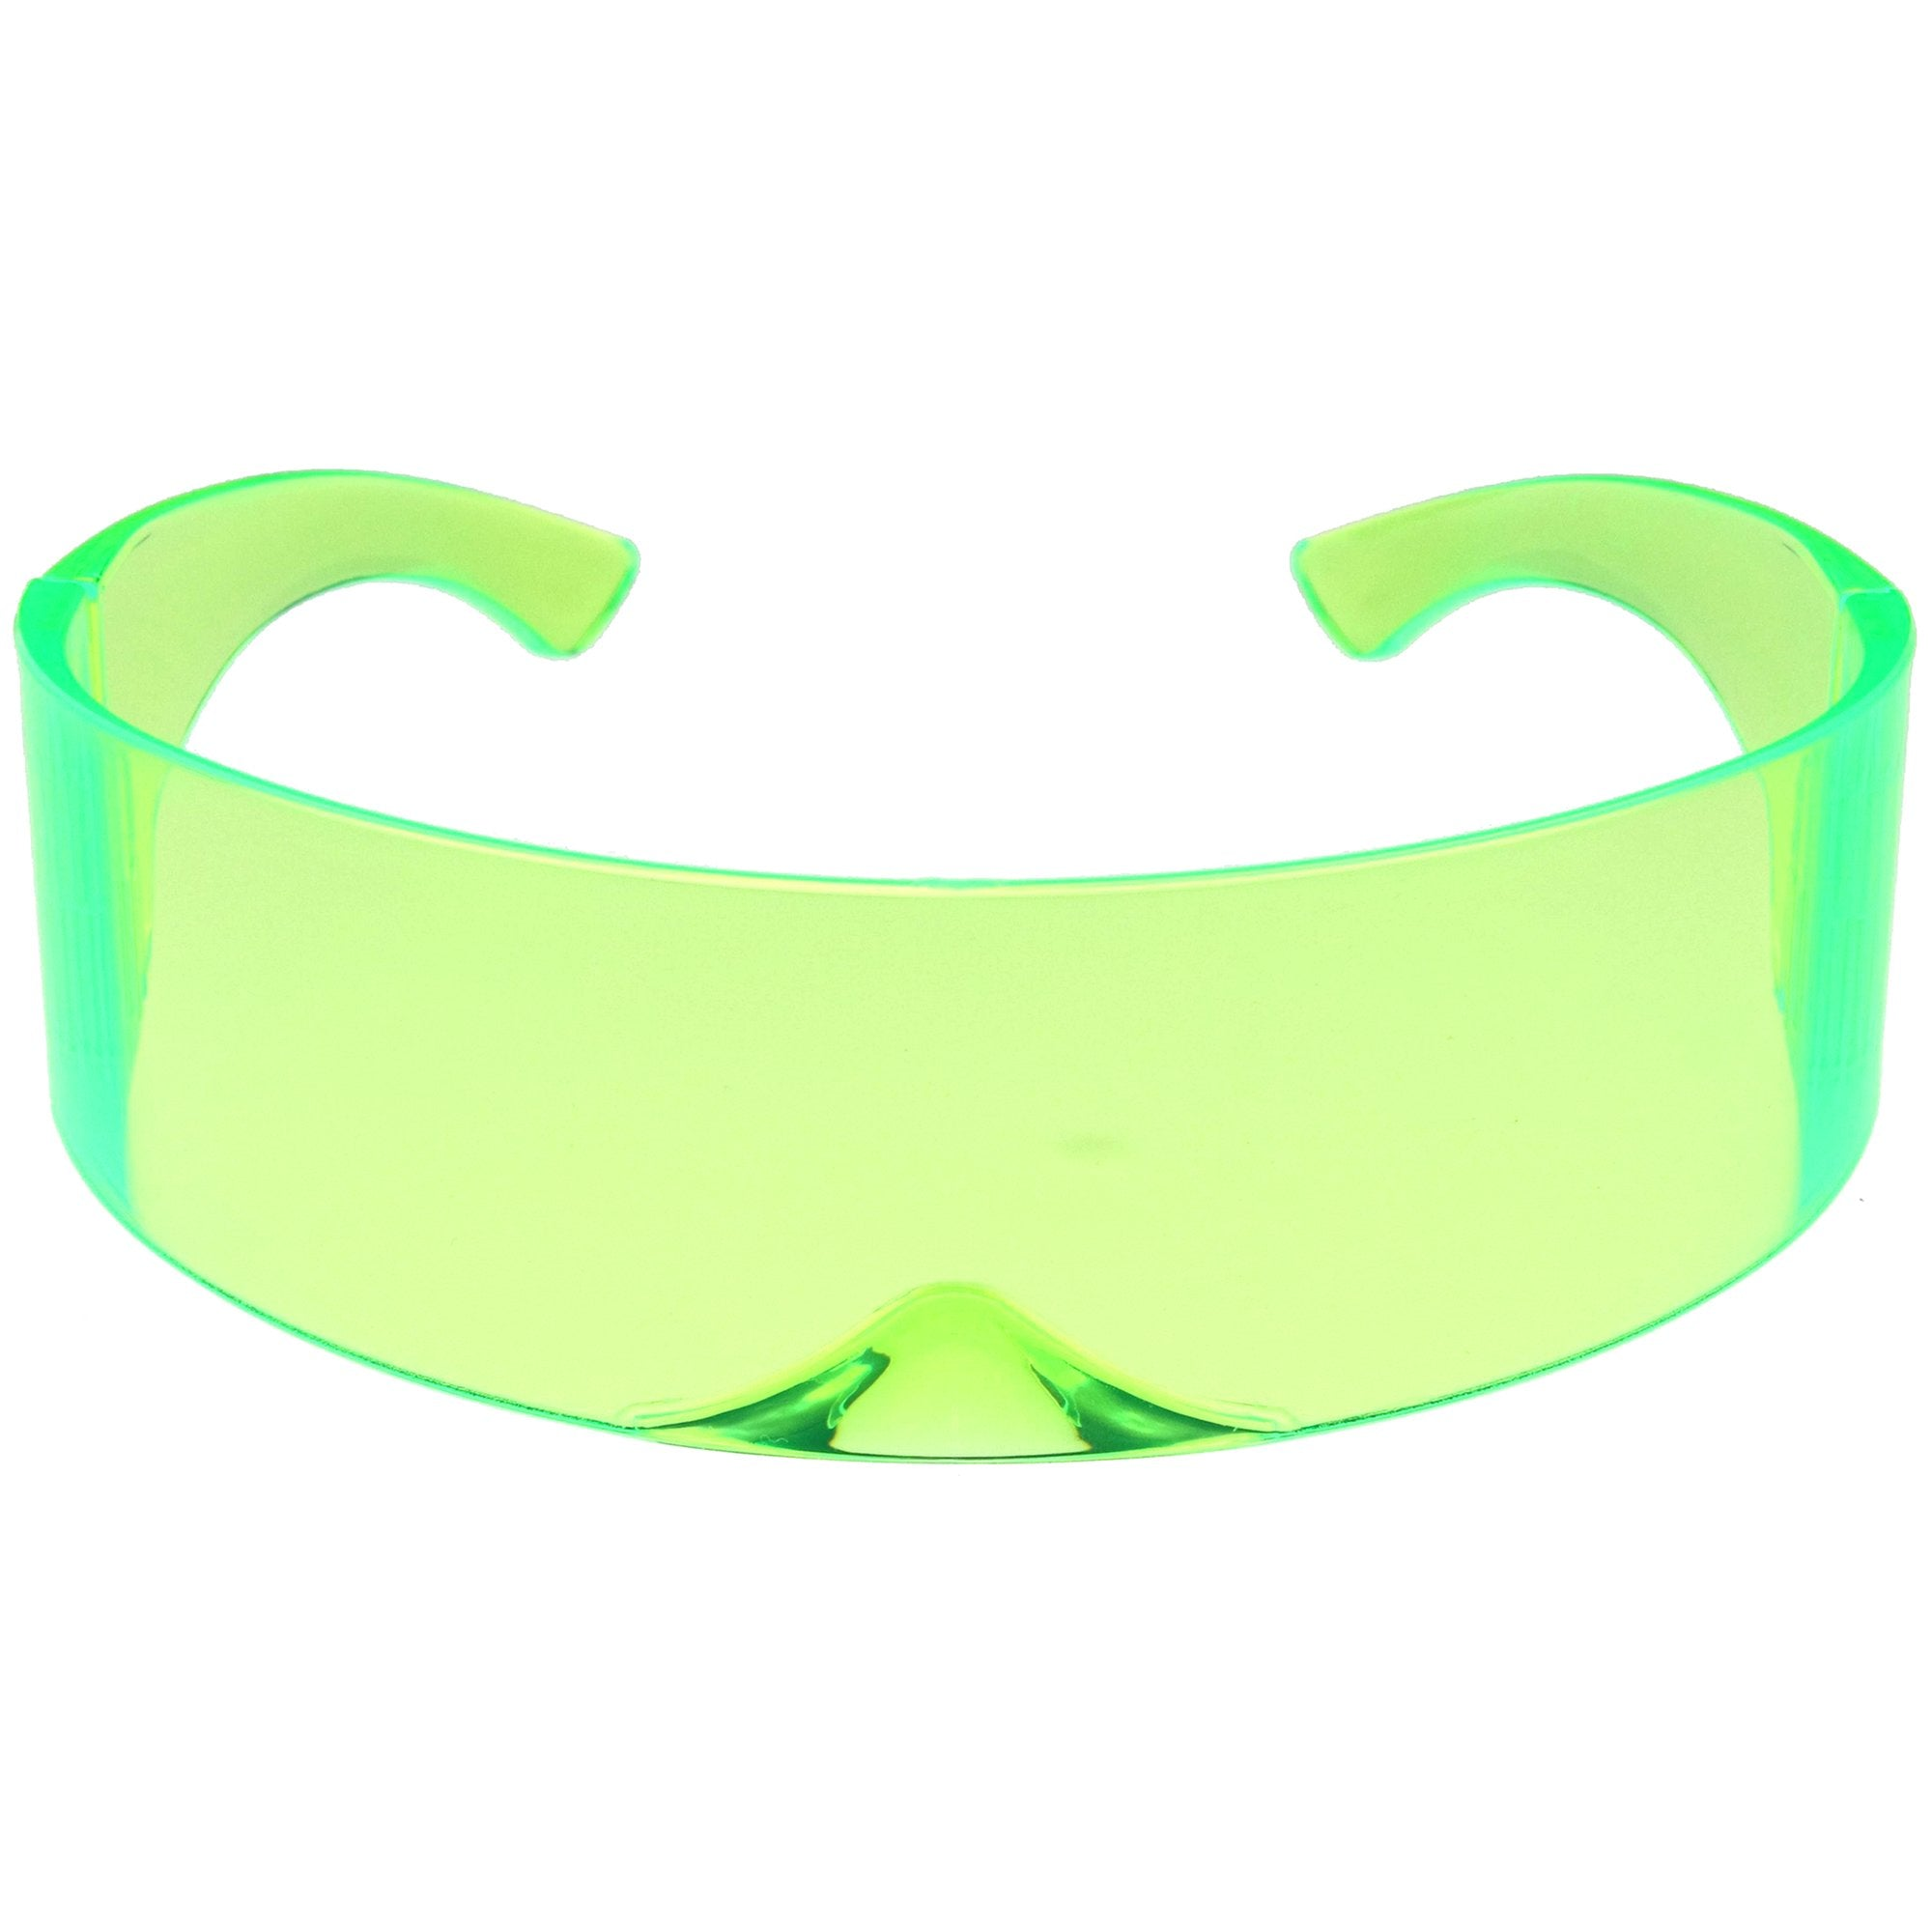 Futuristic Retro Color Tinted Wrap Around Shield Sunglasses D175